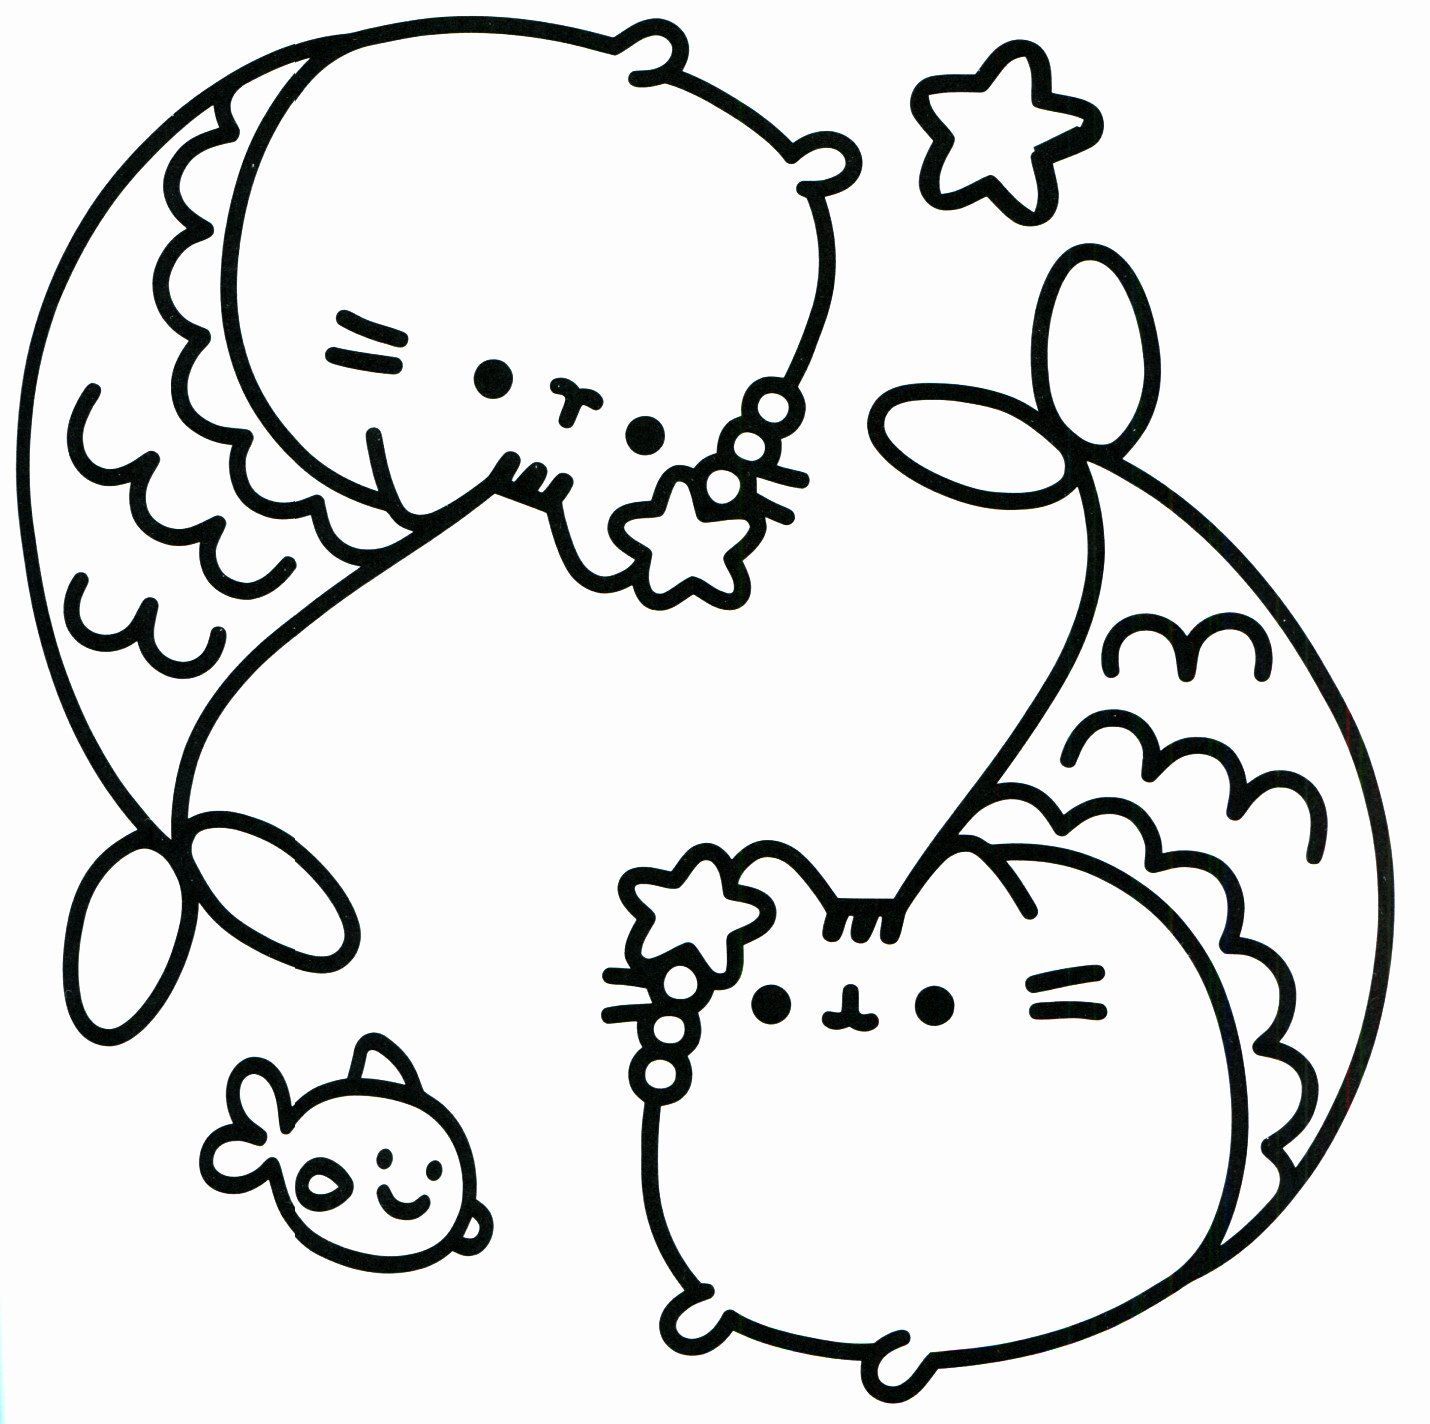 Kawaii Coloring Pages Animals Unique Apollinaire Leanna Free Coloring Pages Unicorn S In 2020 Pusheen Coloring Pages Unicorn Coloring Pages Hello Kitty Colouring Pages